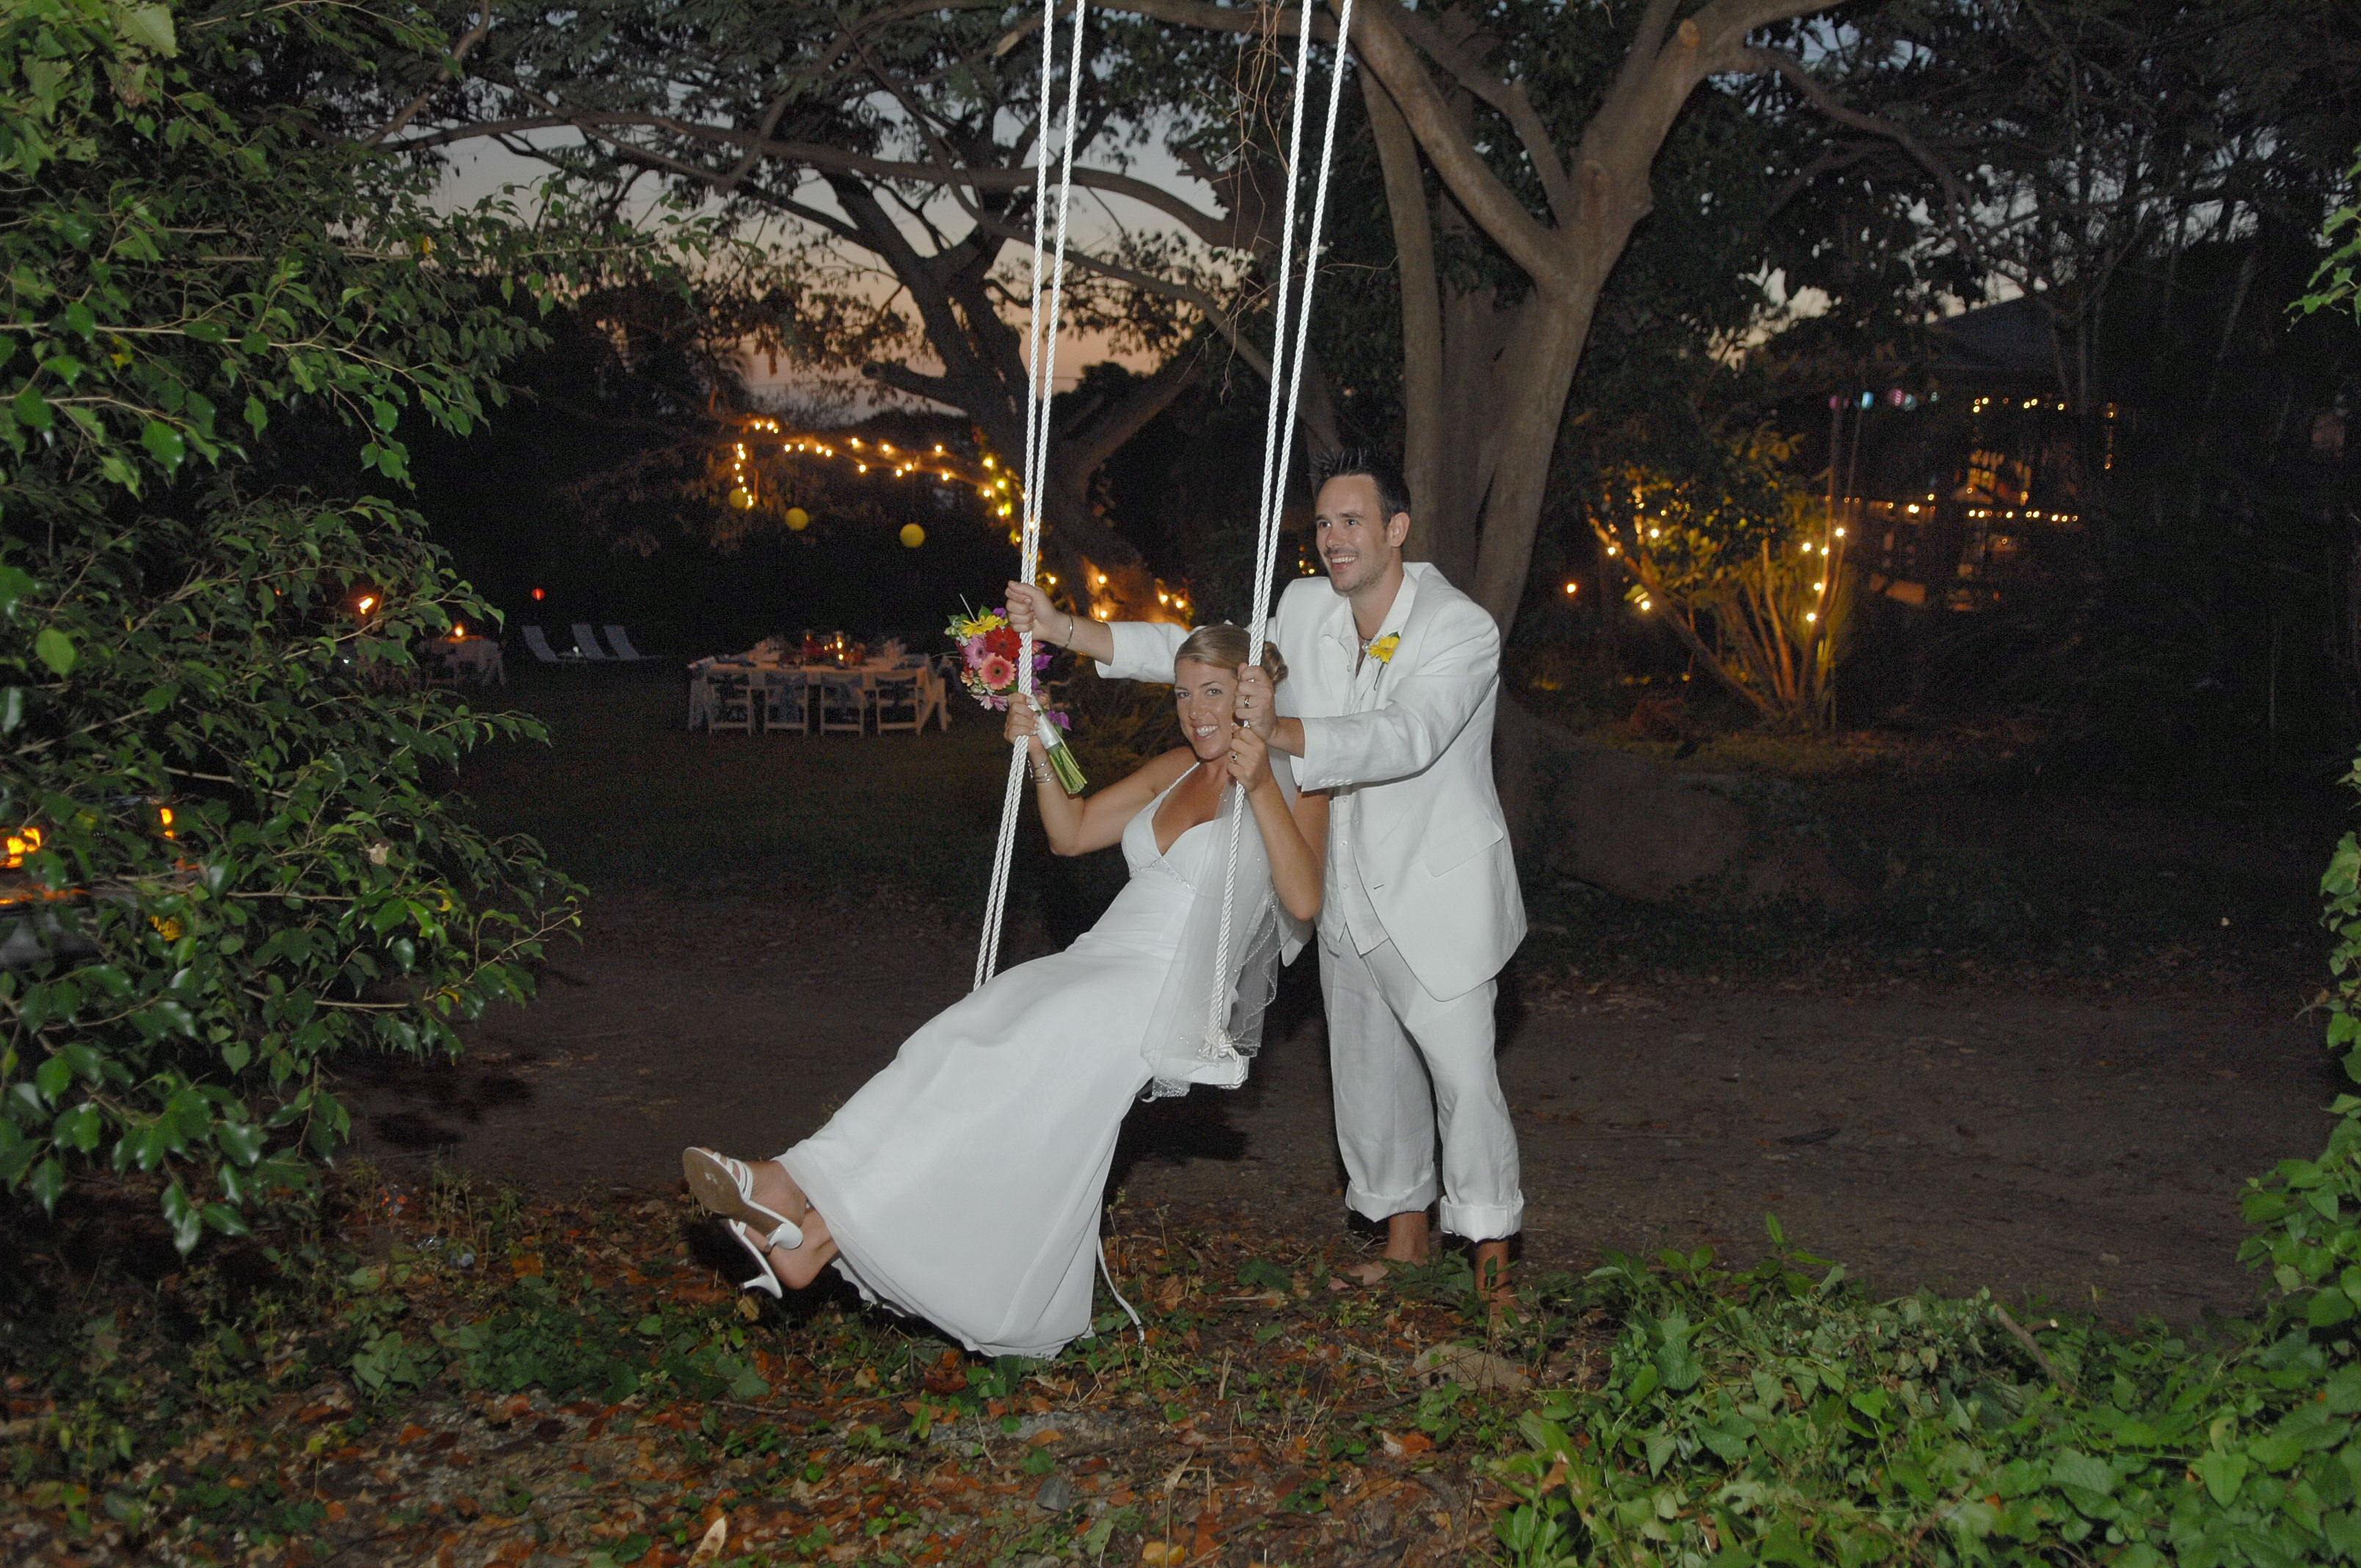 Swingbridegroom